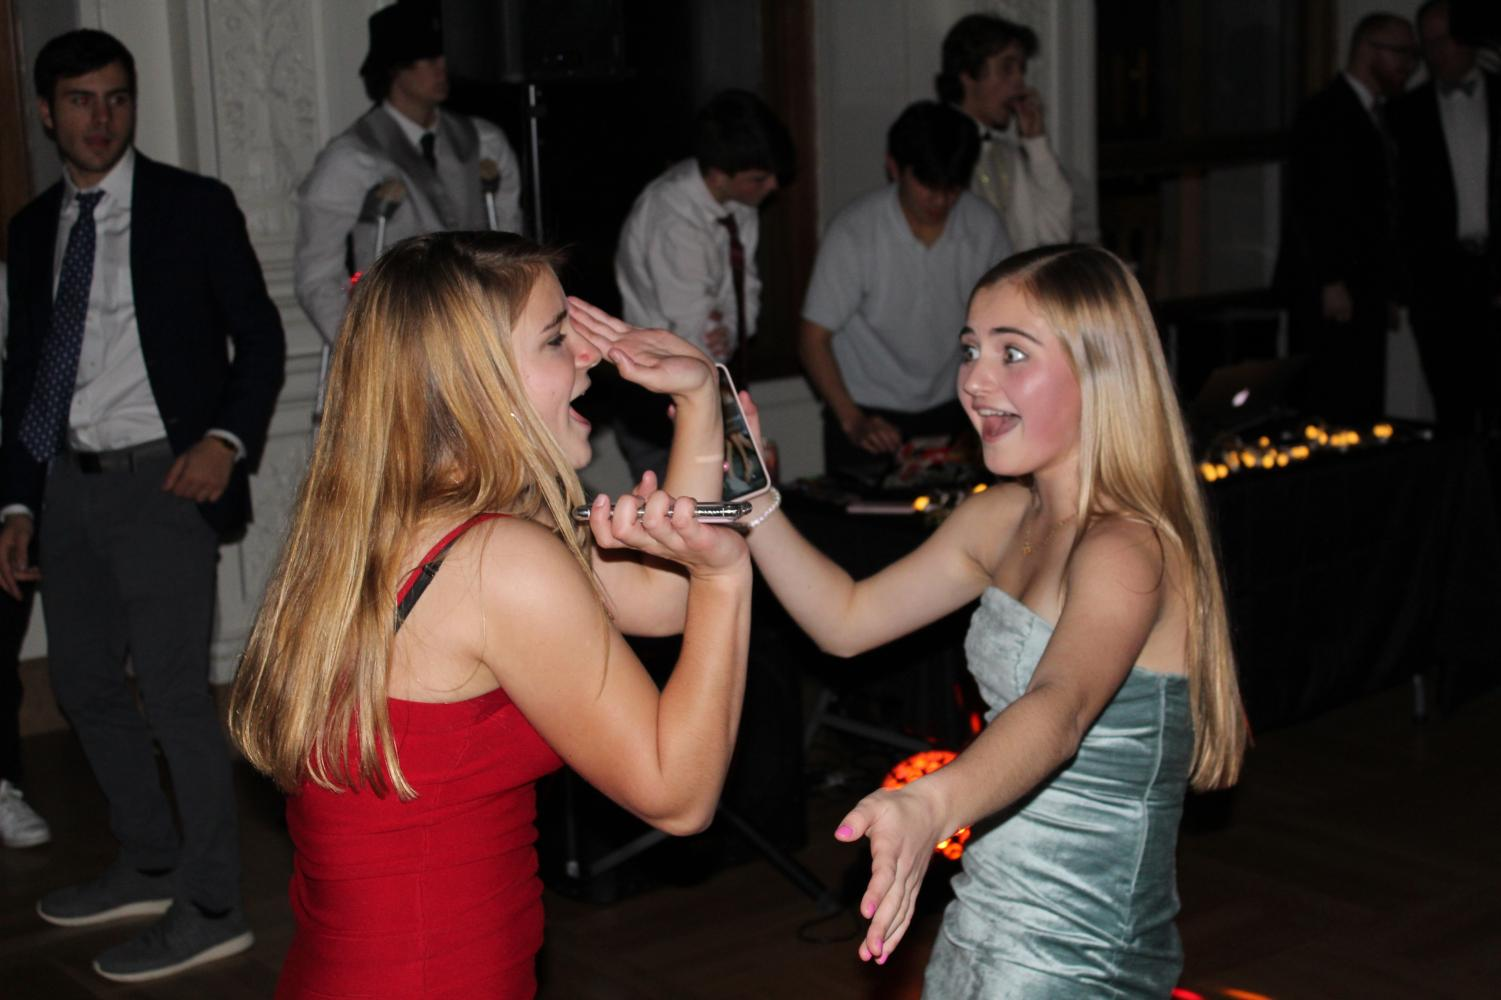 Sophomores Avery Stout and Paige Retajczyk dance at the Winter Formal. The dance was scheduled a week before the sophomore class leaves for Convent & Stuart Hall's annual President's Costa Rica Trip.